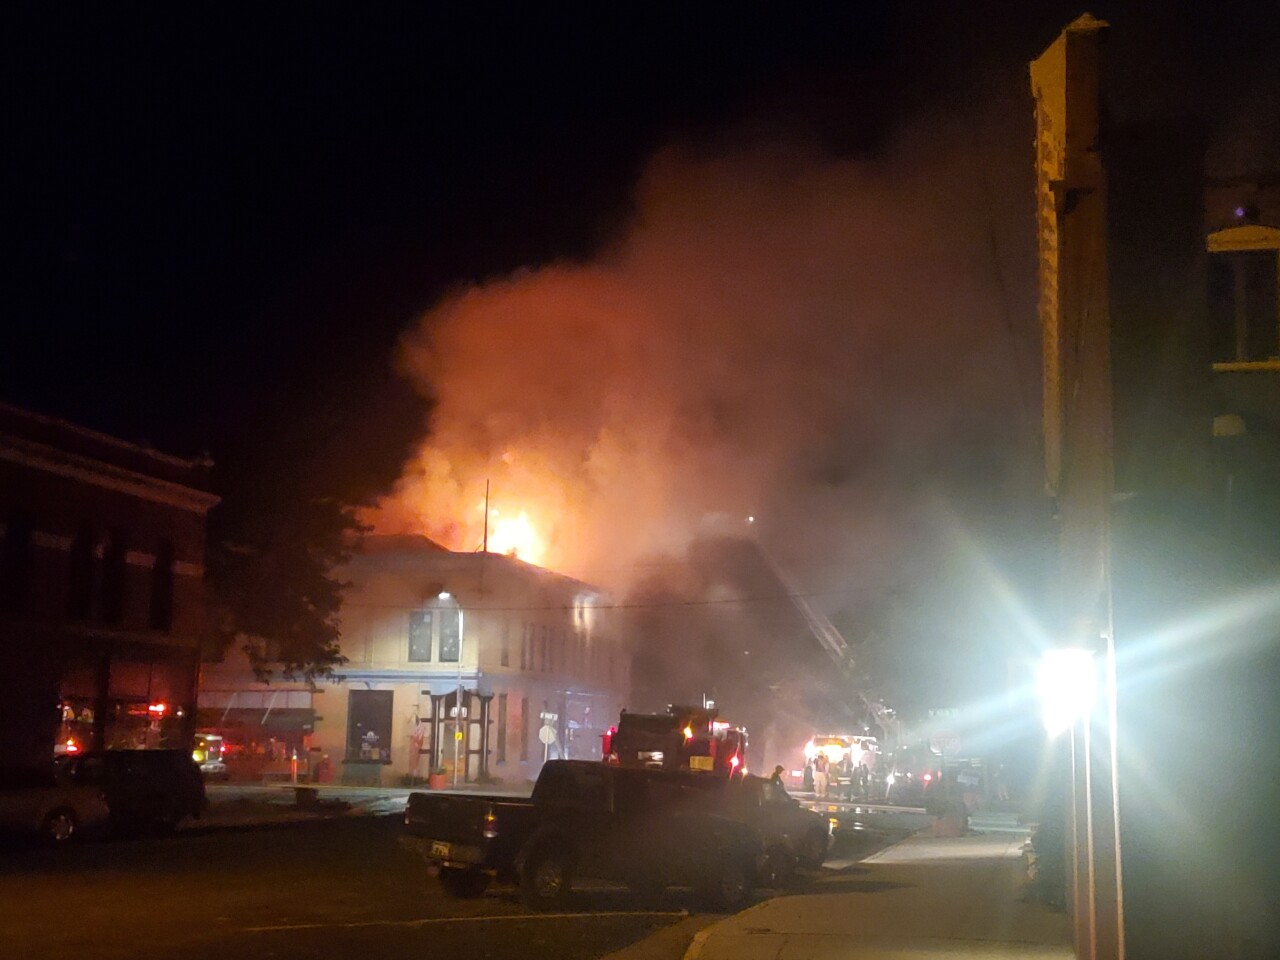 The building at the corner of Main Street and Santa Fe in downtown Florence that caught on fire.